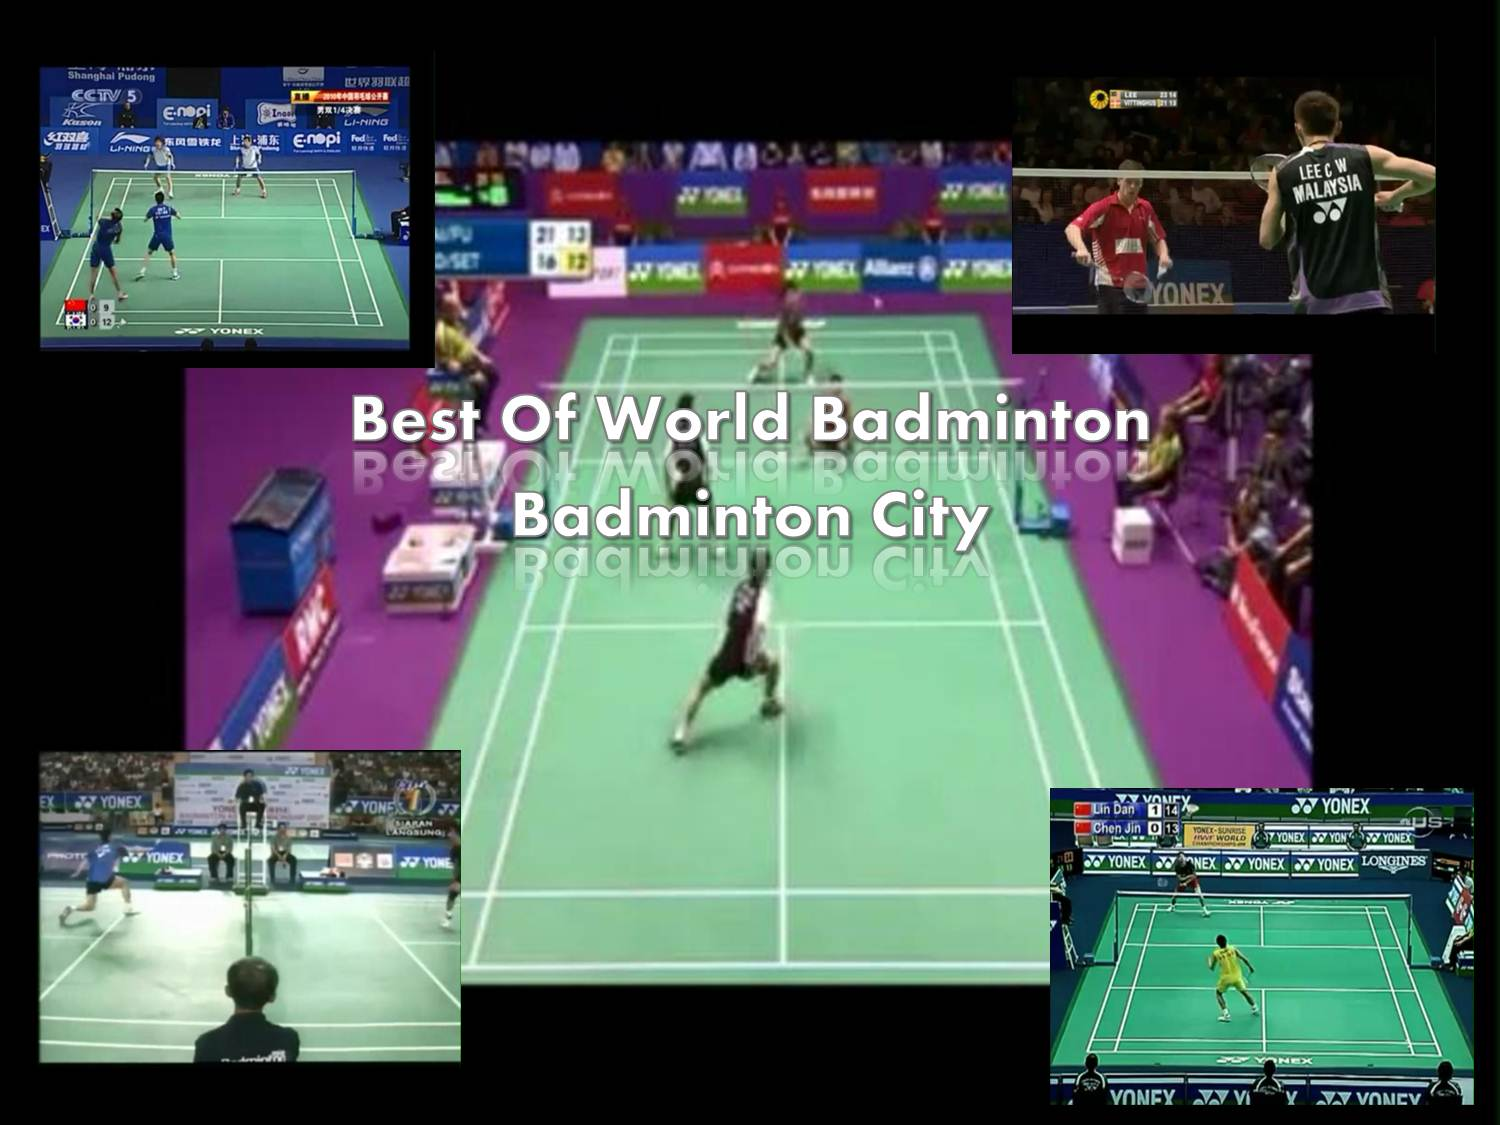 کلیپ بدمینتونی - Best of world badminton